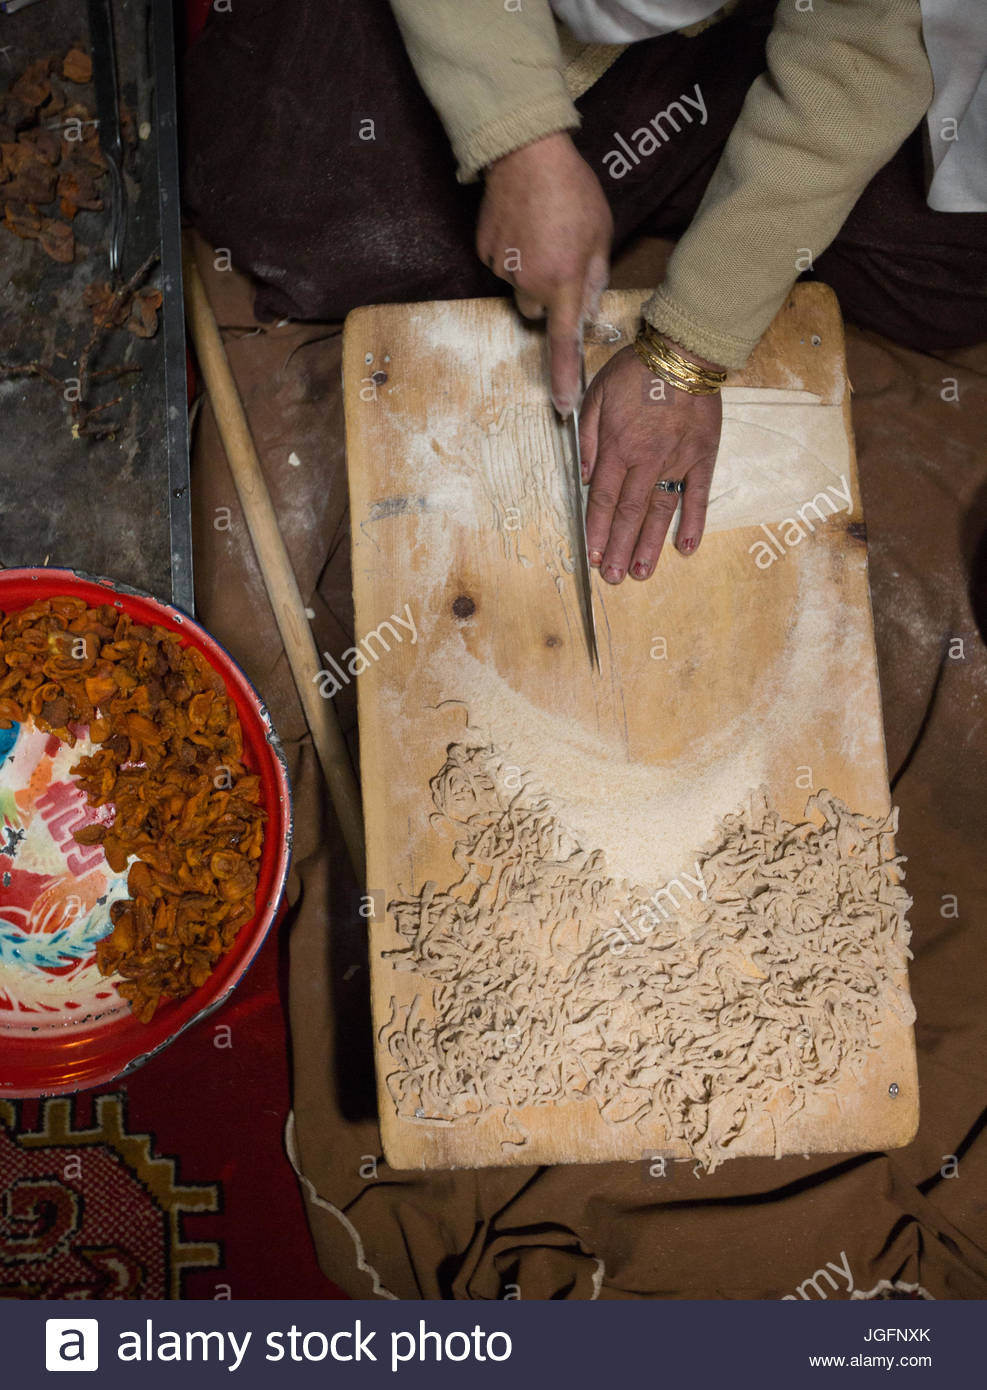 Making traditional apricot soup called Haneetze Doudo in a home in the Hunza Region. - Stock Image